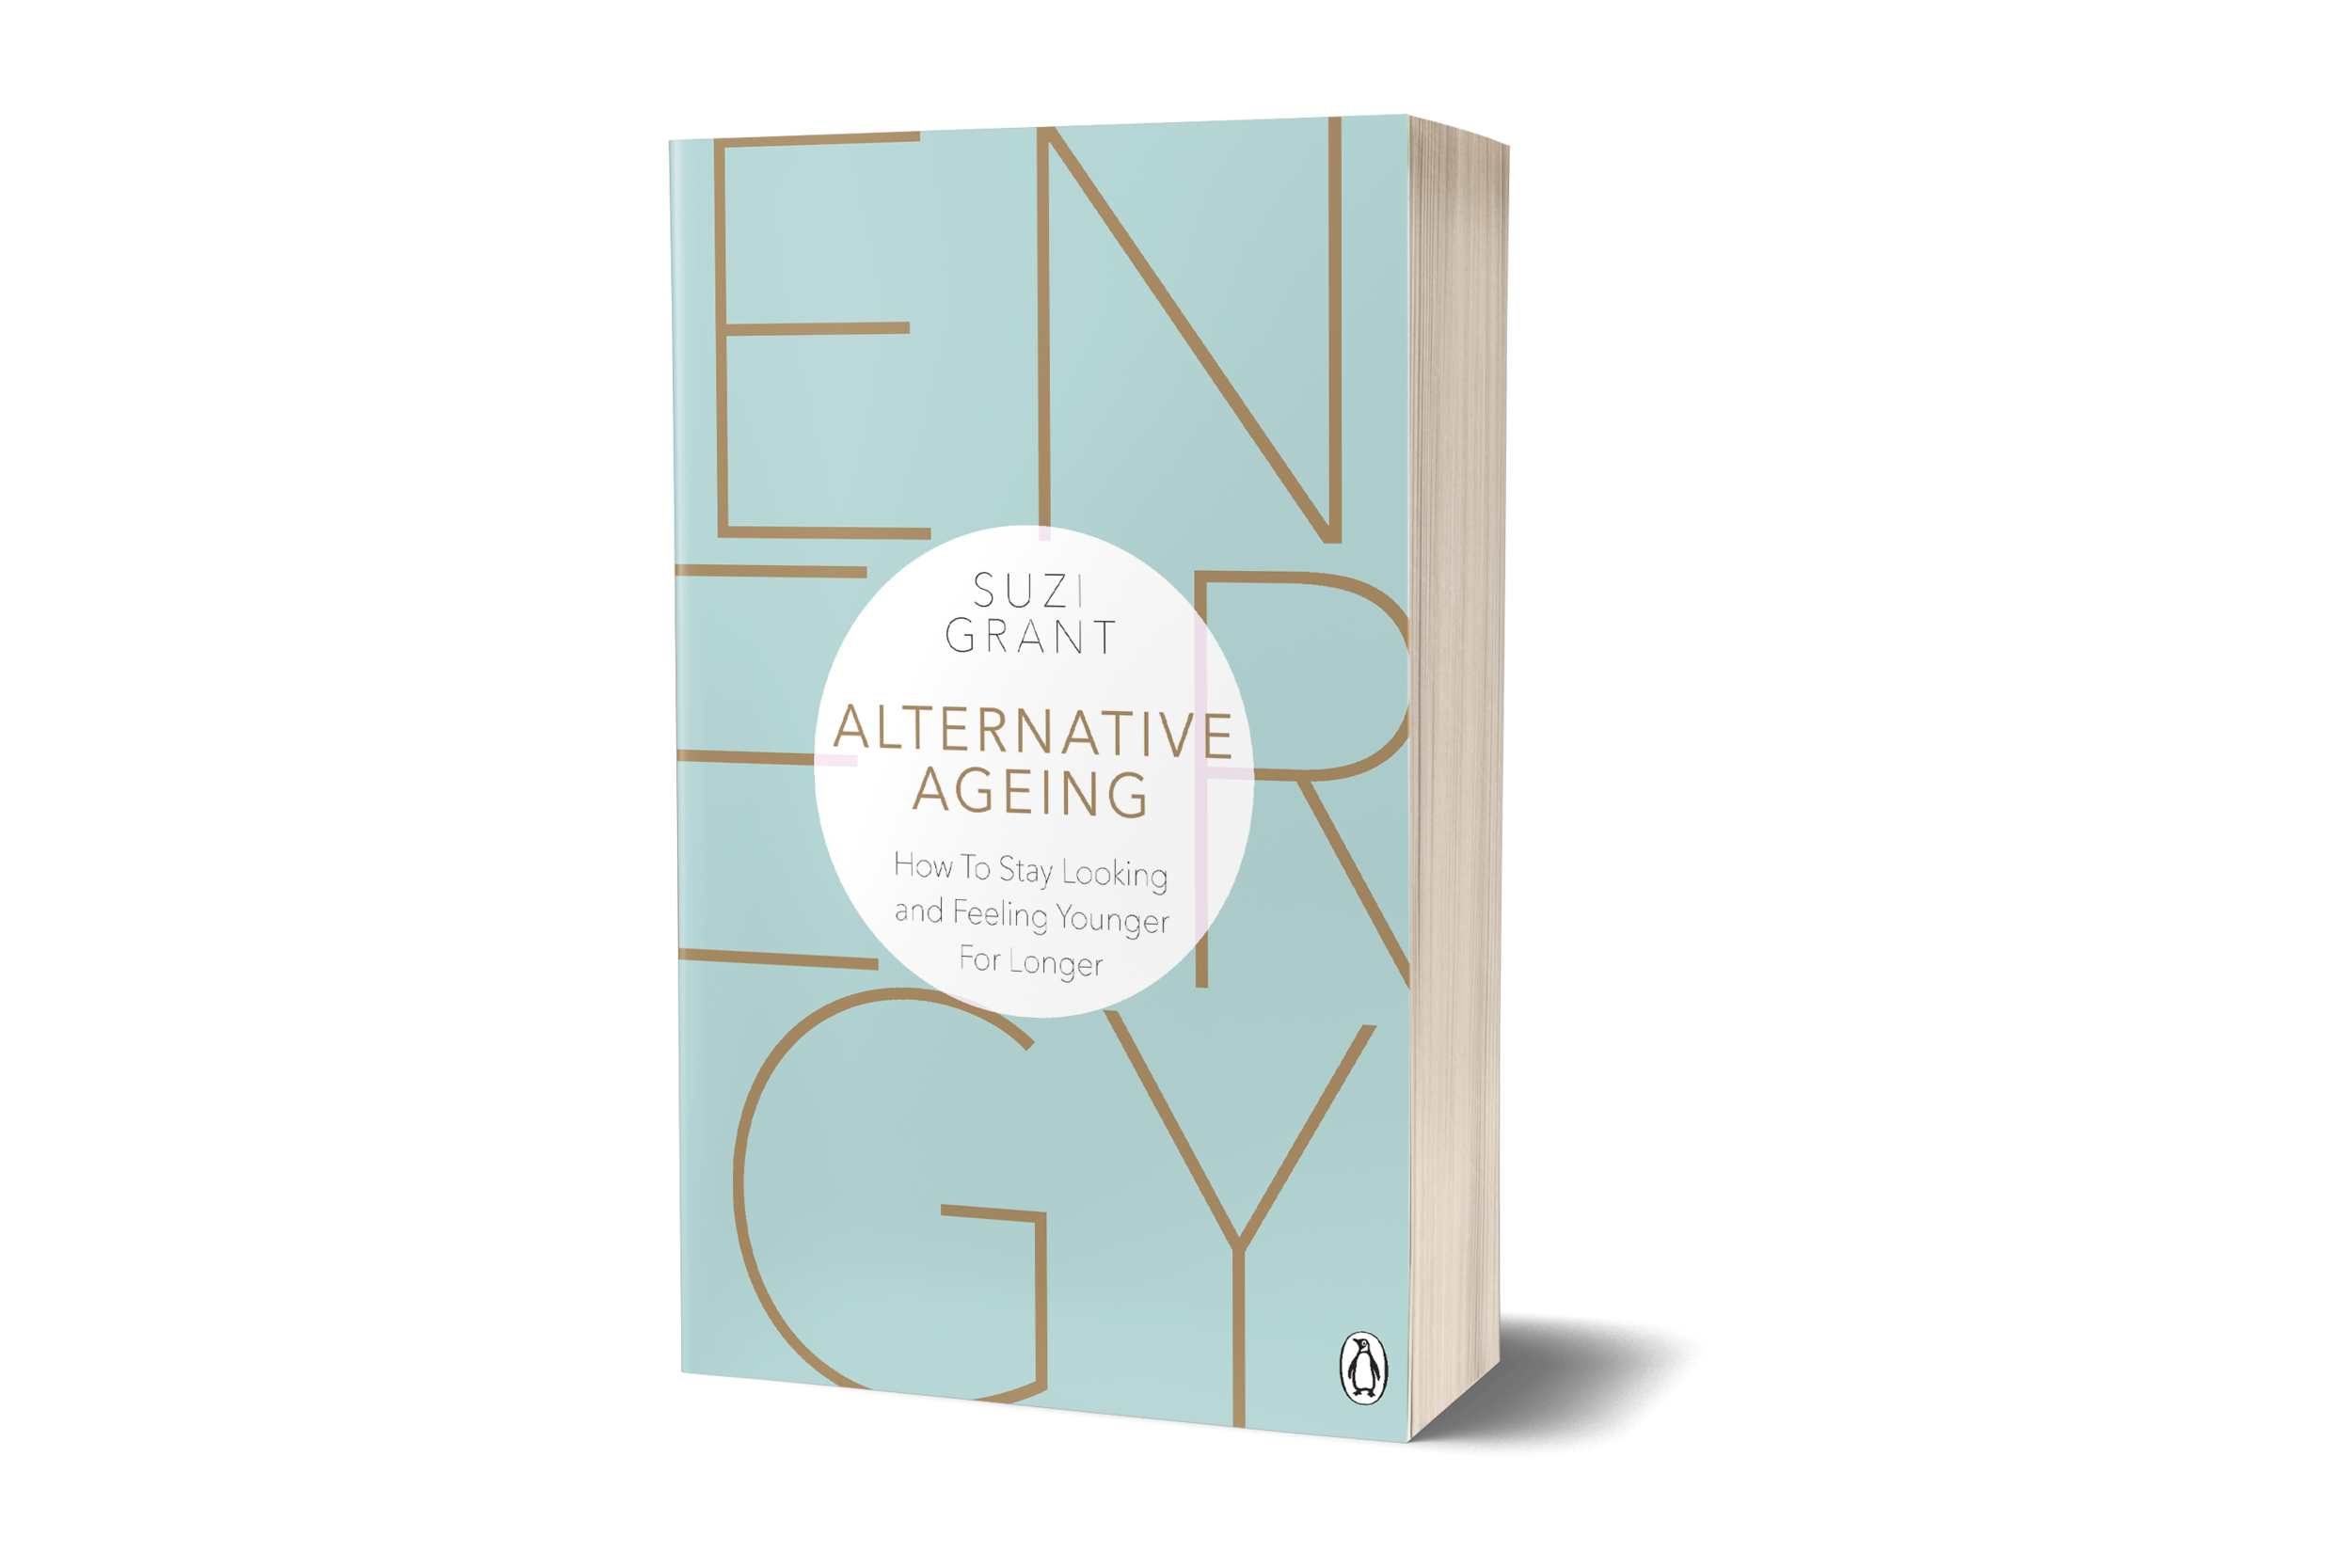 Alternative Ageing book by Suzi Grant